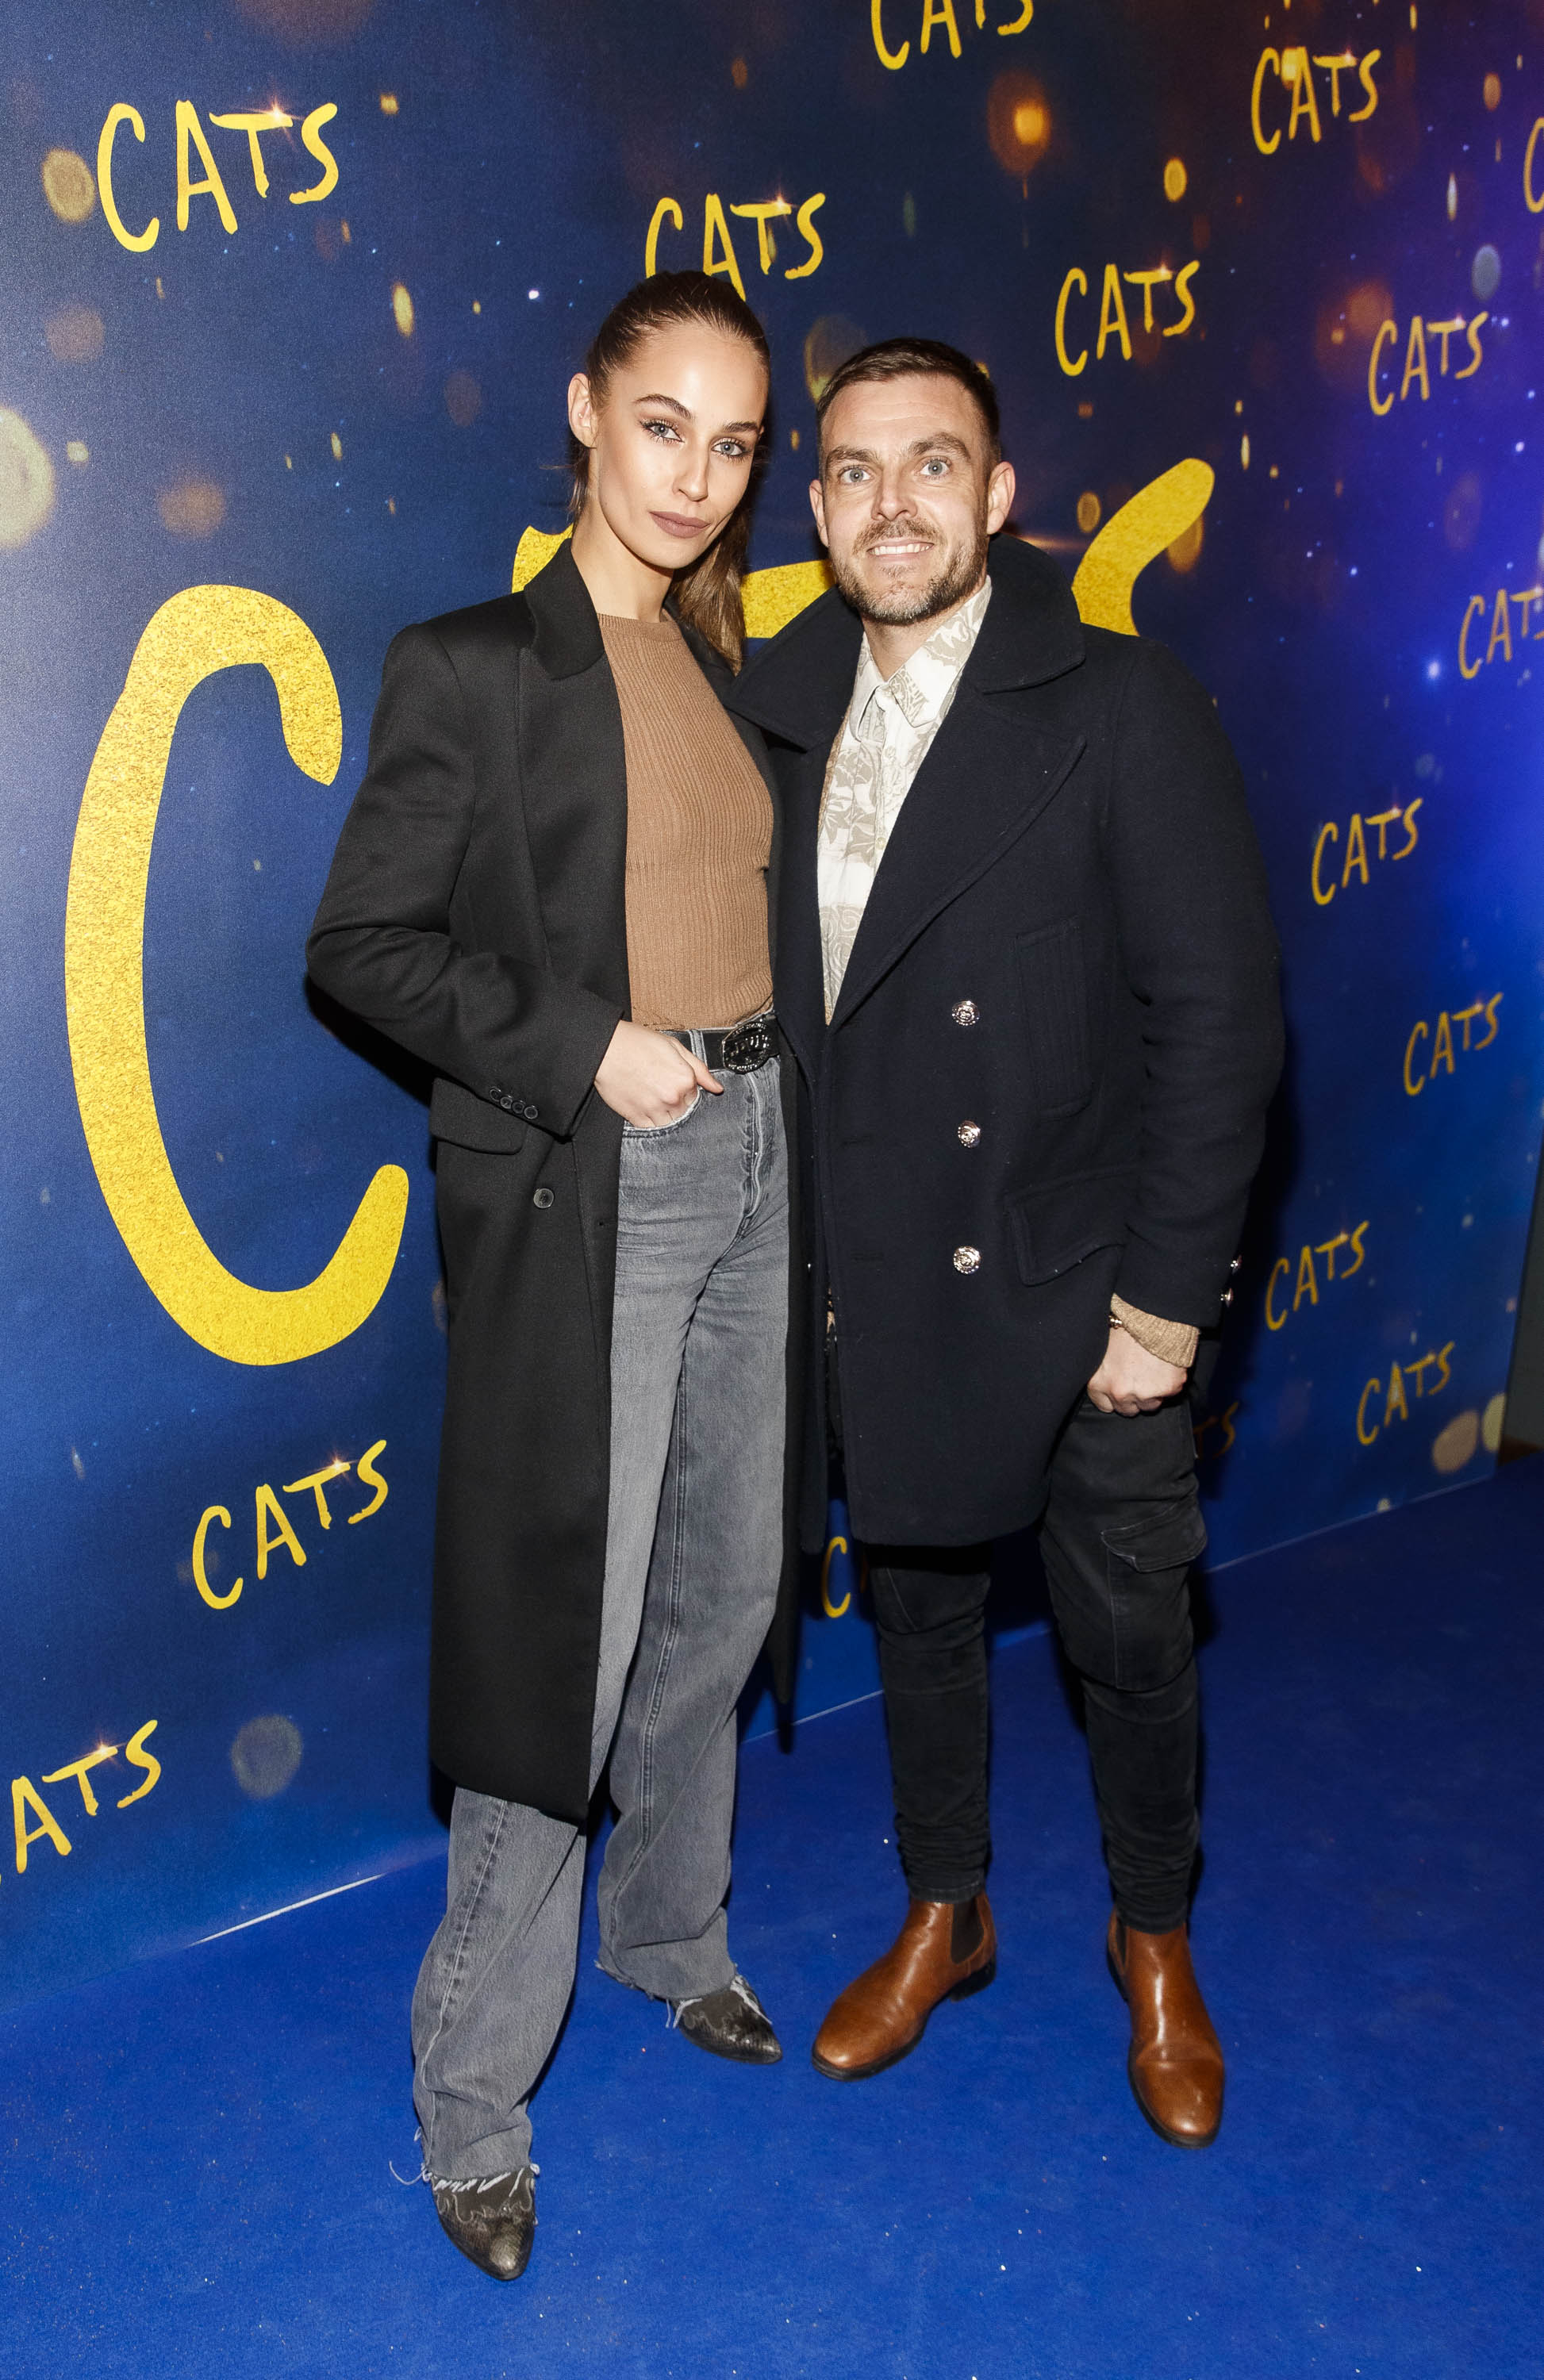 Thalia Heffernan and Ryan McShane pictured at the Irish premiere screening of 'Cats' at The Stella Theatre, Rathmines. Picture: Andres Poveda